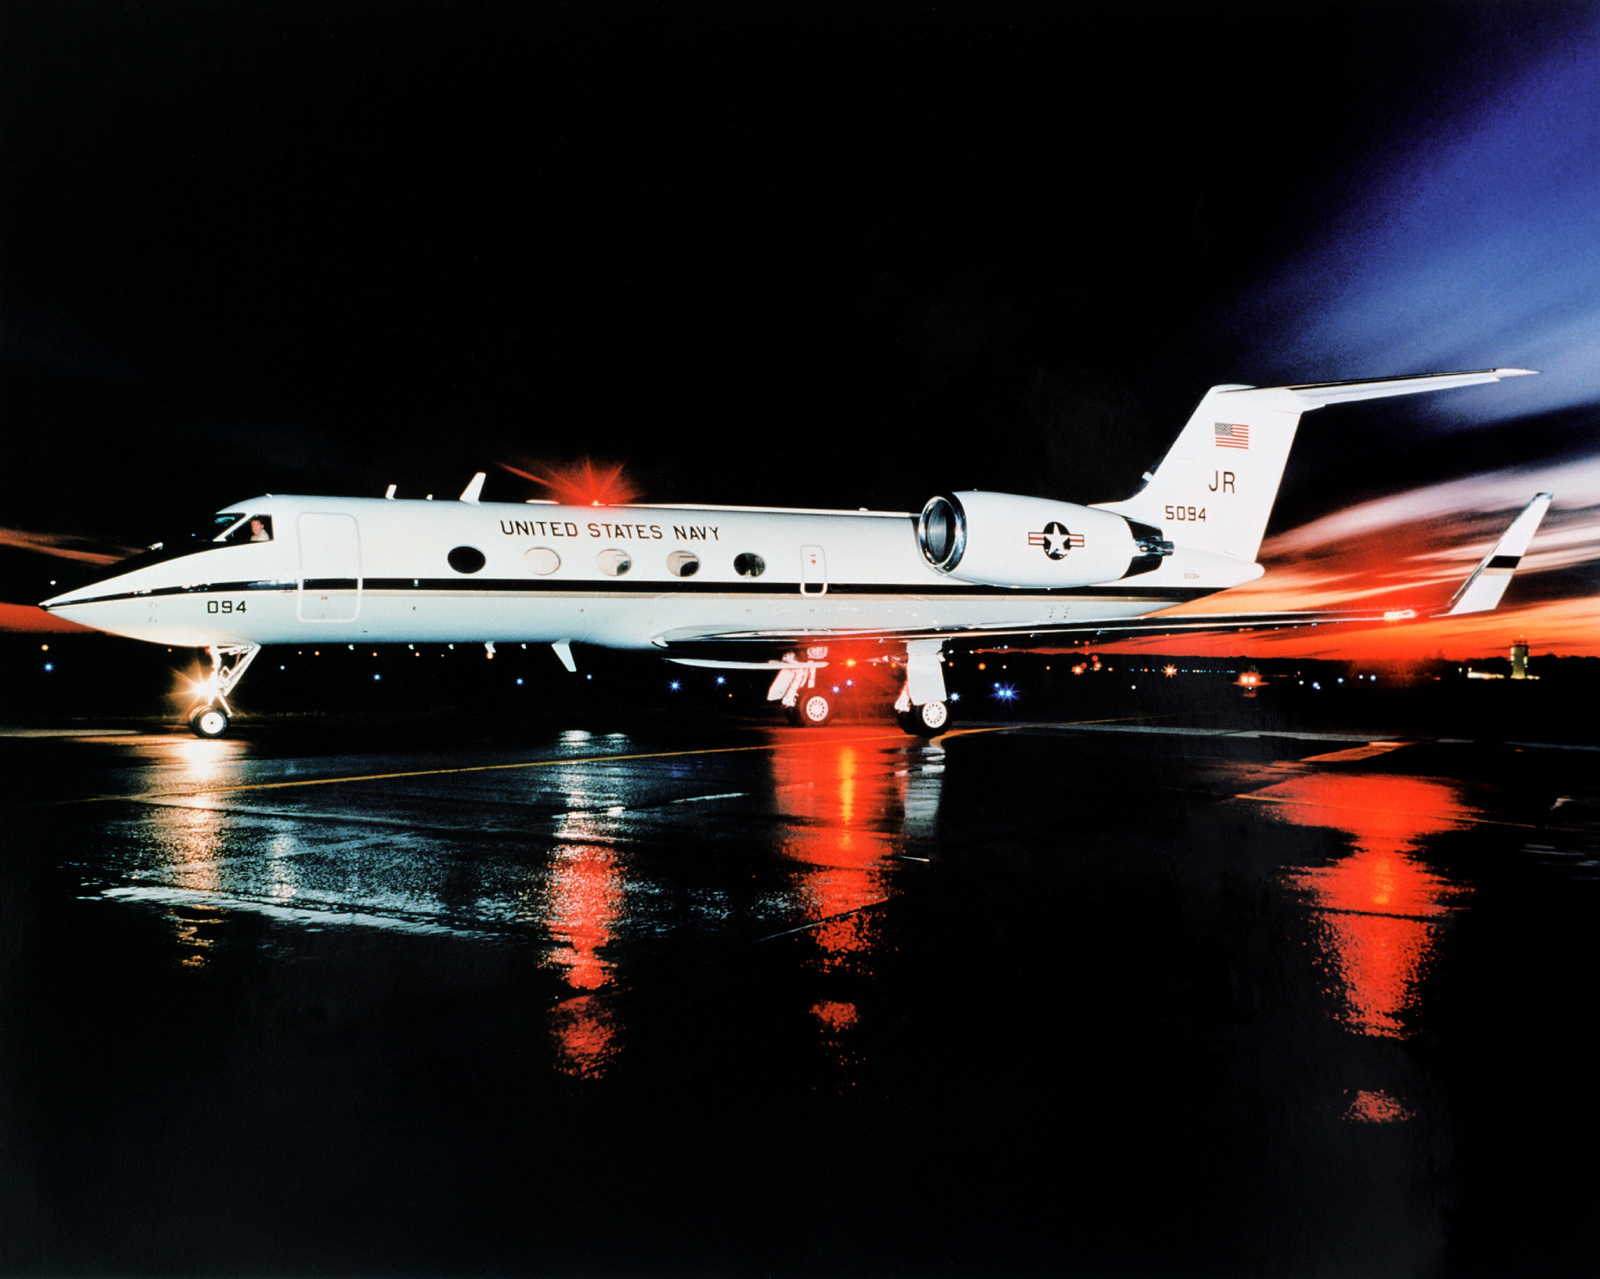 A night view of the new C-20G transport aircraft parked on the tarmac at Naval Air Station. This is the first of five aircraft to be delivered to the Navy. One additional aircraft will go the Marine Corps.(Exact date unknown)